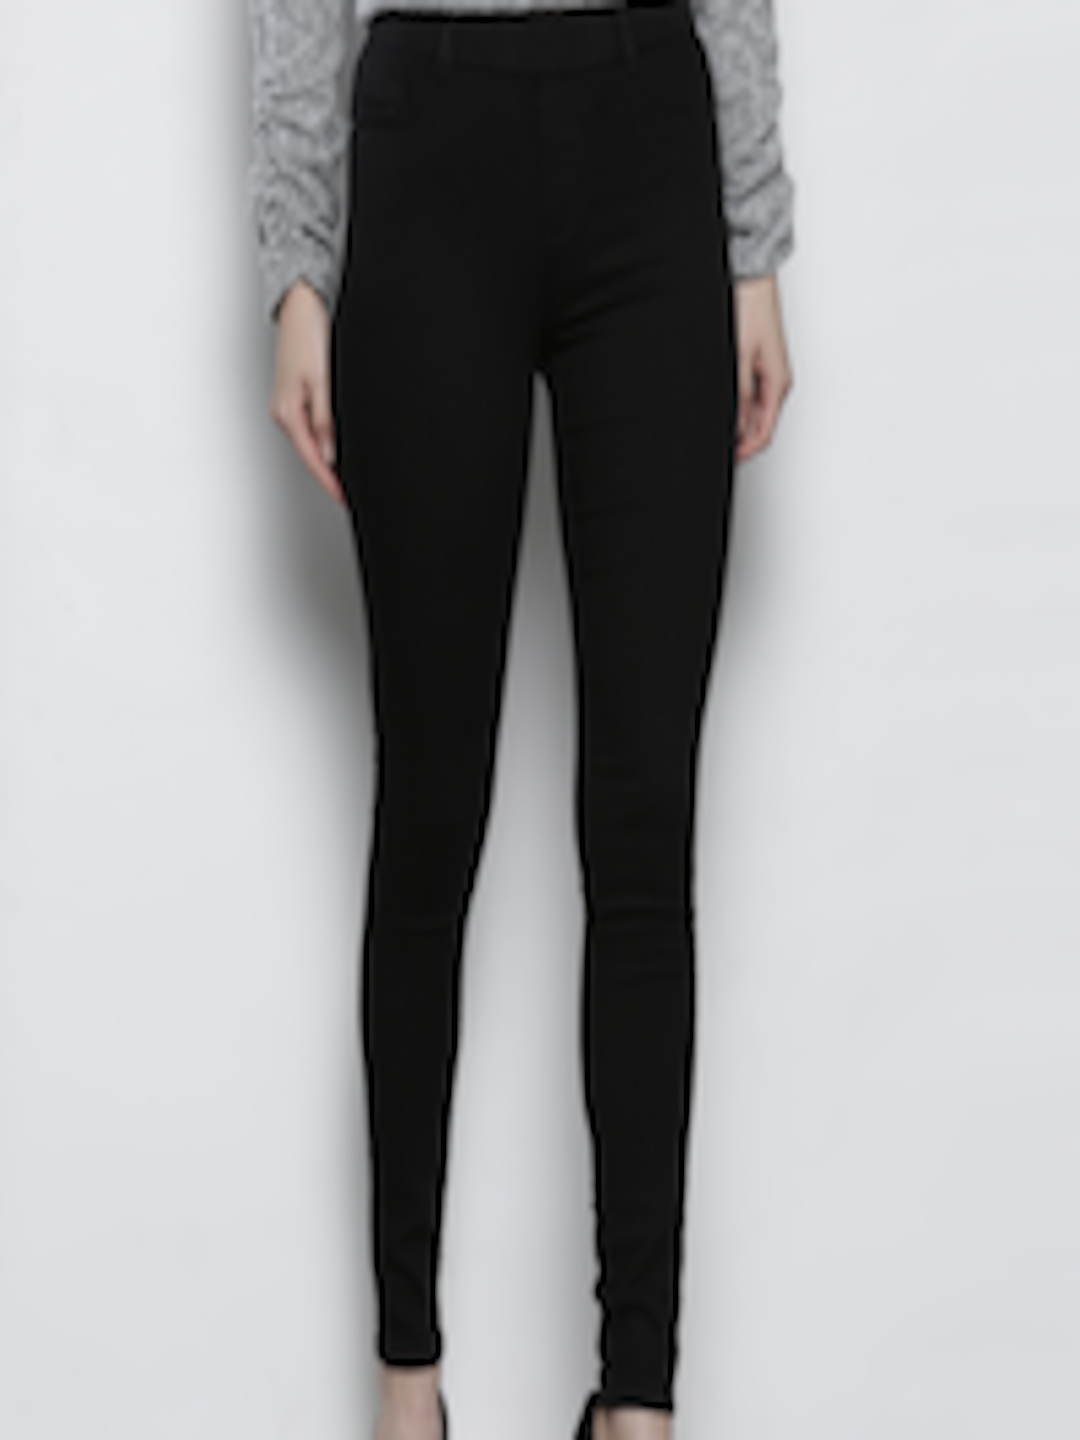 f7e809410efc Buy DOROTHY PERKINS Black Eden Ultra Soft Jeggings - Jeggings for ...